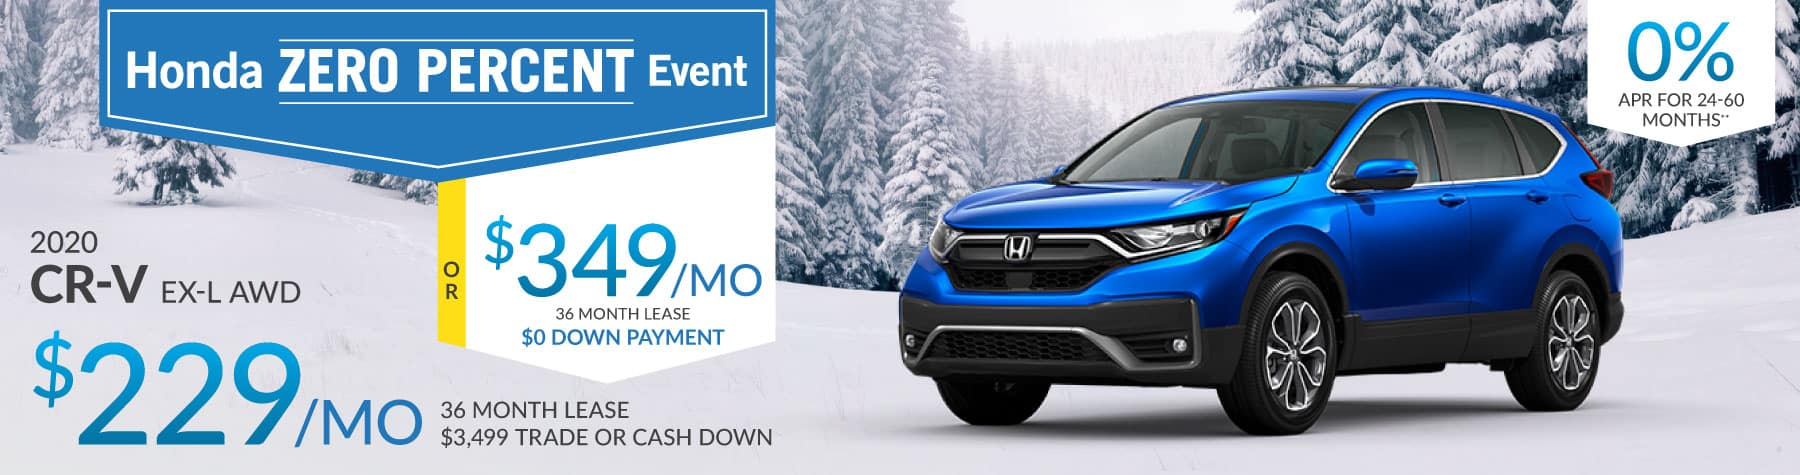 Header Photo of the 2020 Honda CR-V